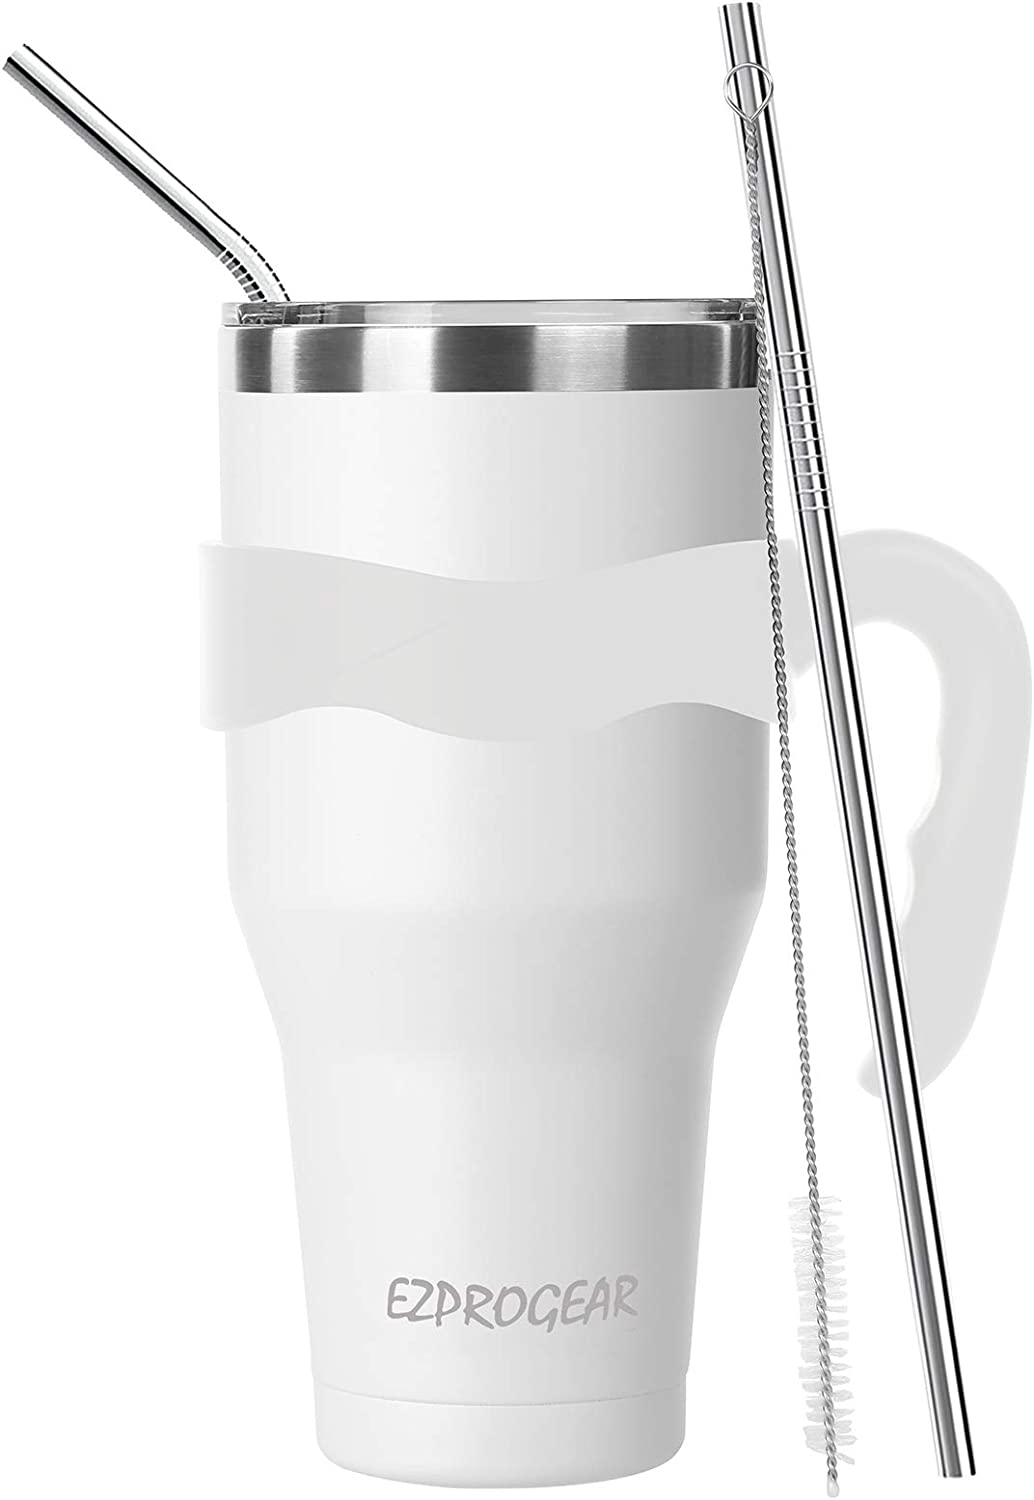 Ezprogear 40 oz Stainless Steel White Beer Tumbler Double Wall Vacuum Insulated with Straws and Handle (40 oz, White)